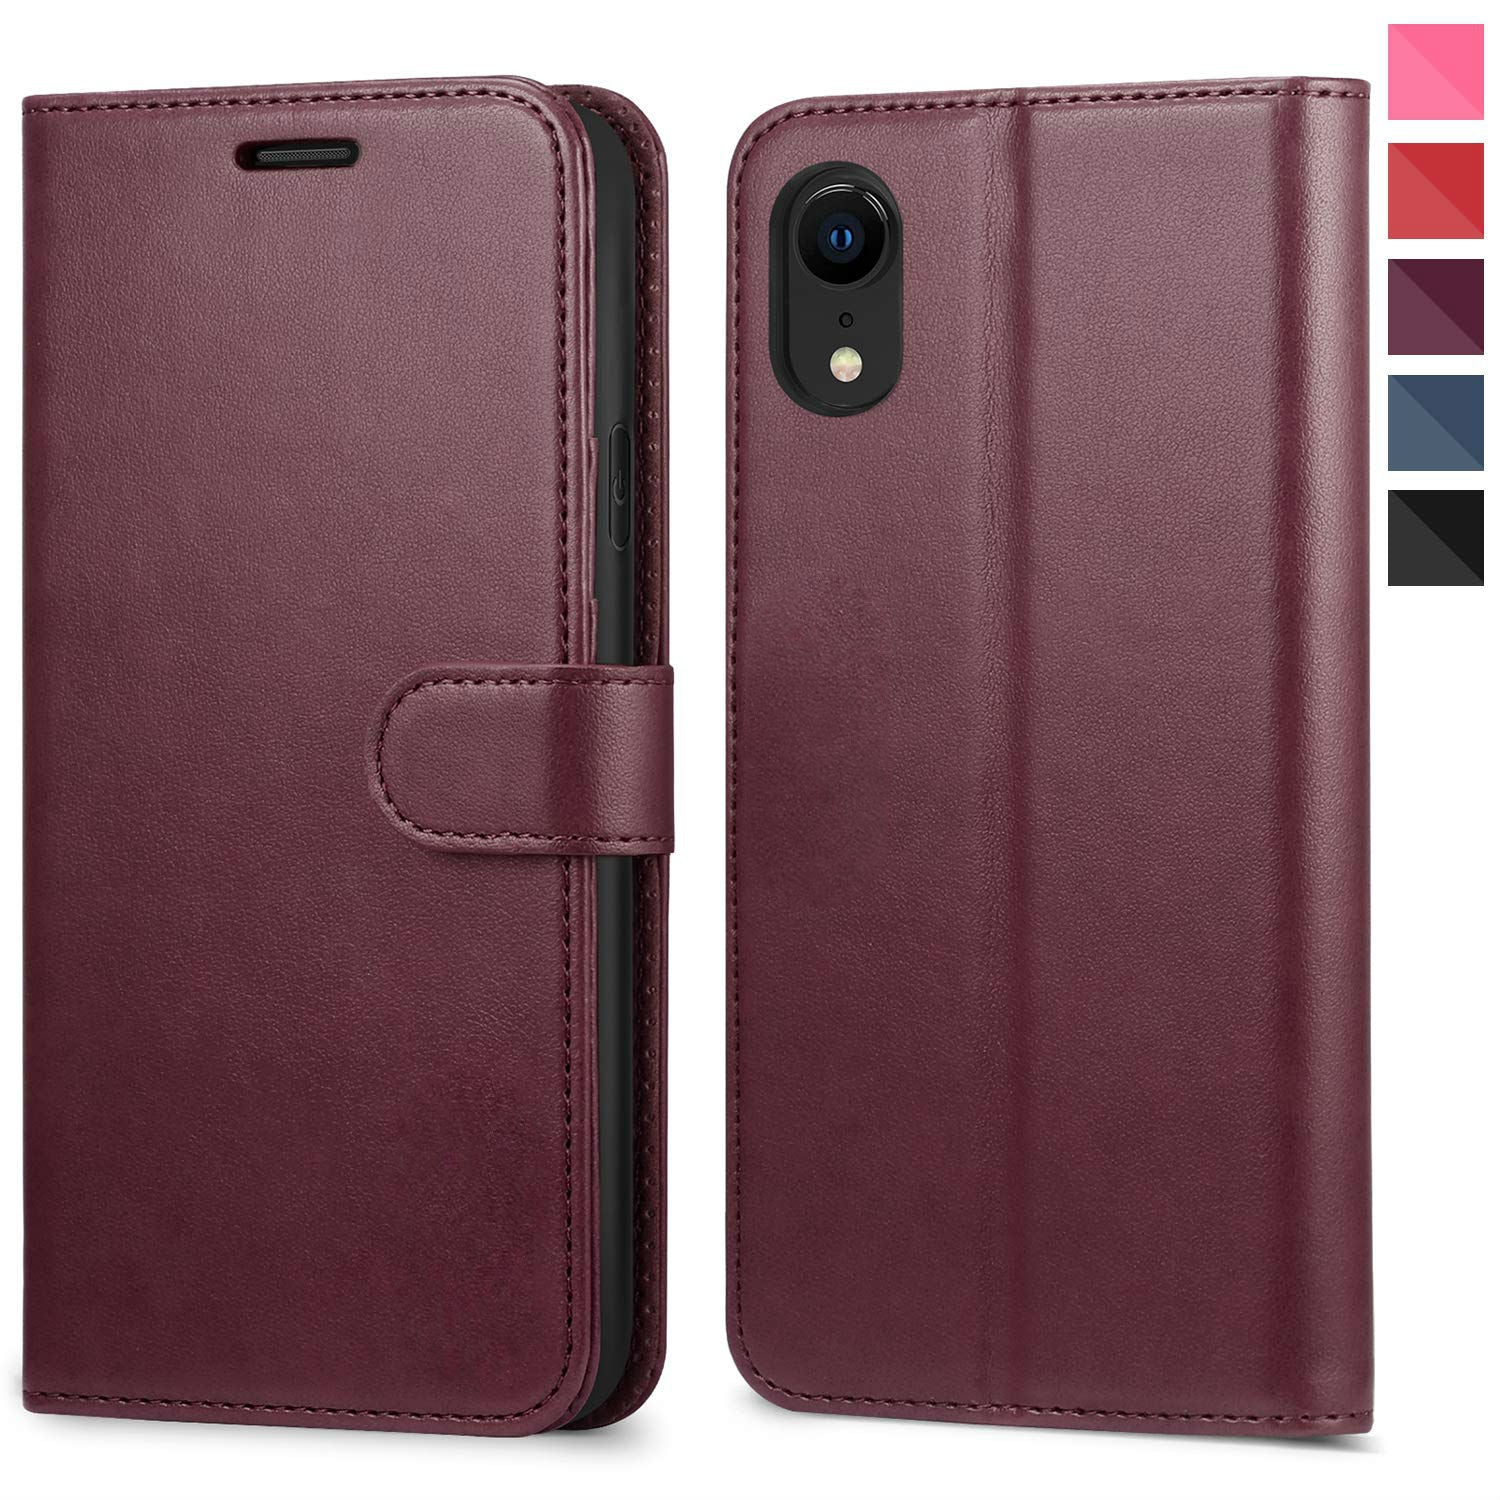 Leather Wallet Magnetic Flip Case with strap Apple iPhone 8 or 8 Plus